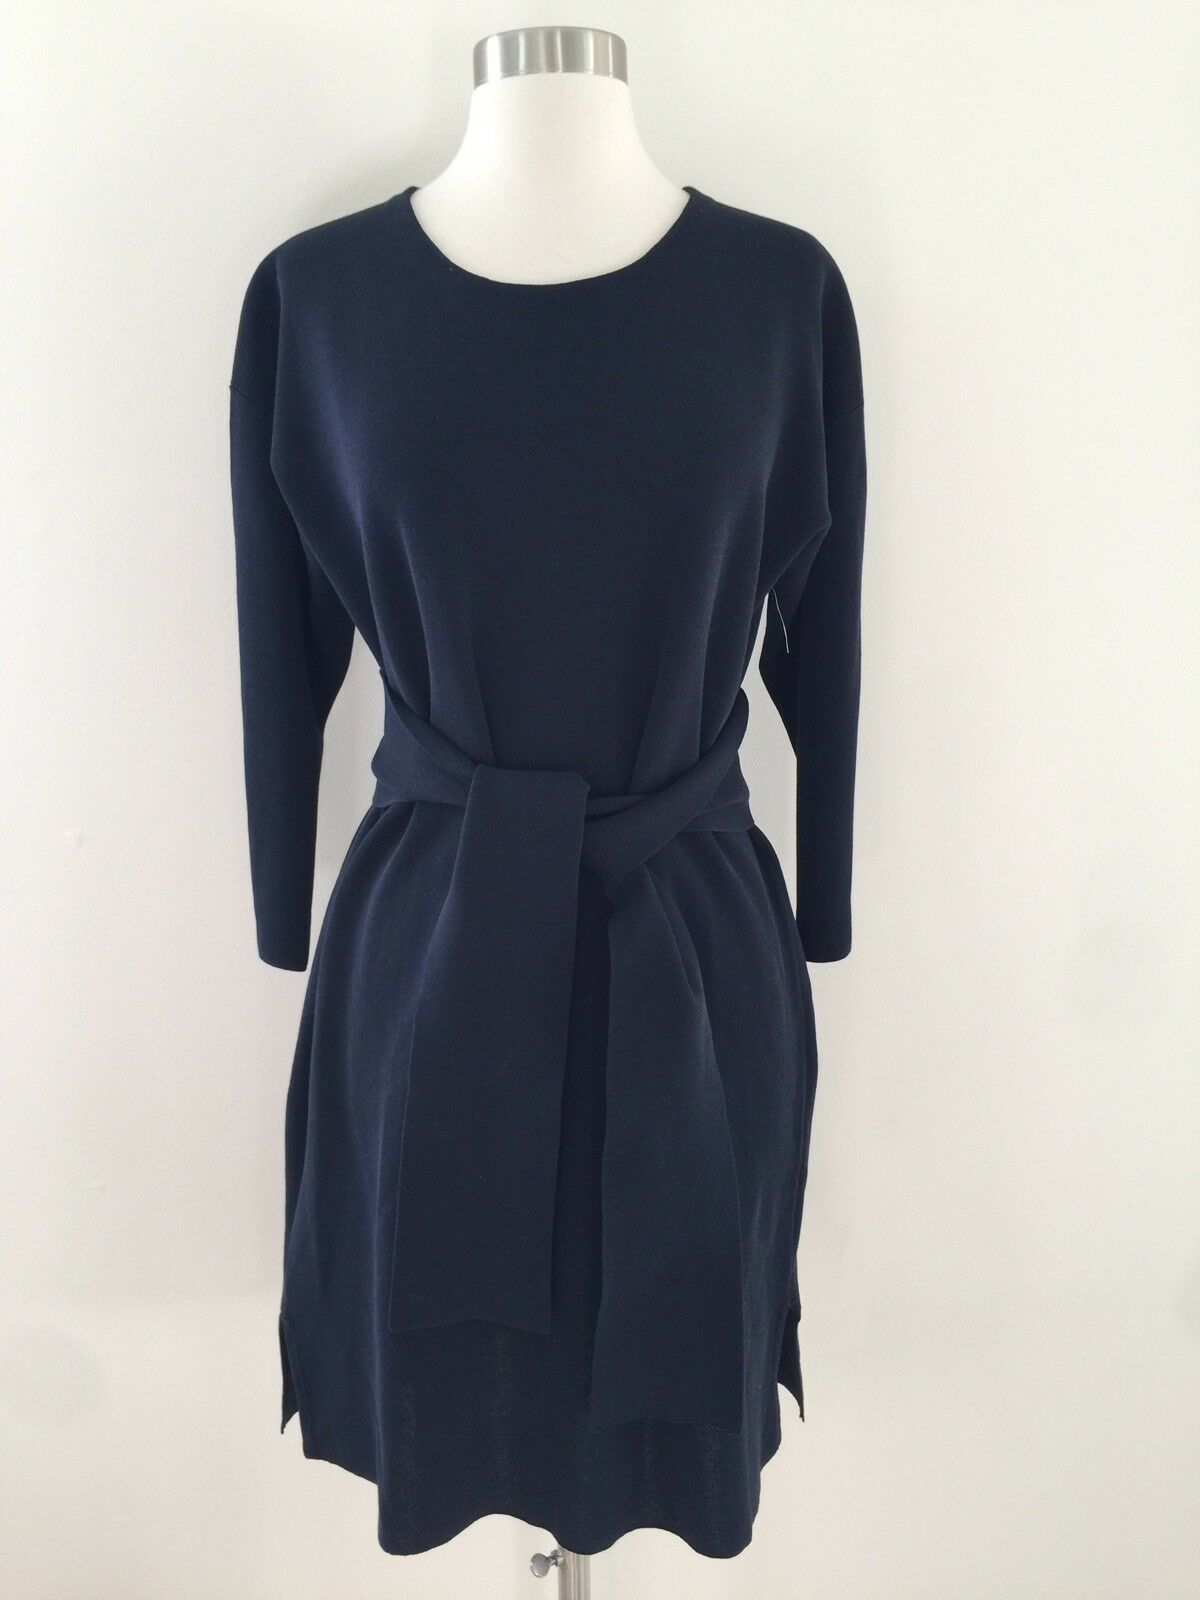 New J.CREW Women's Tie-Waist Cotton Dress Indigo Sea Navy H6940  118 XXL XXLARGE